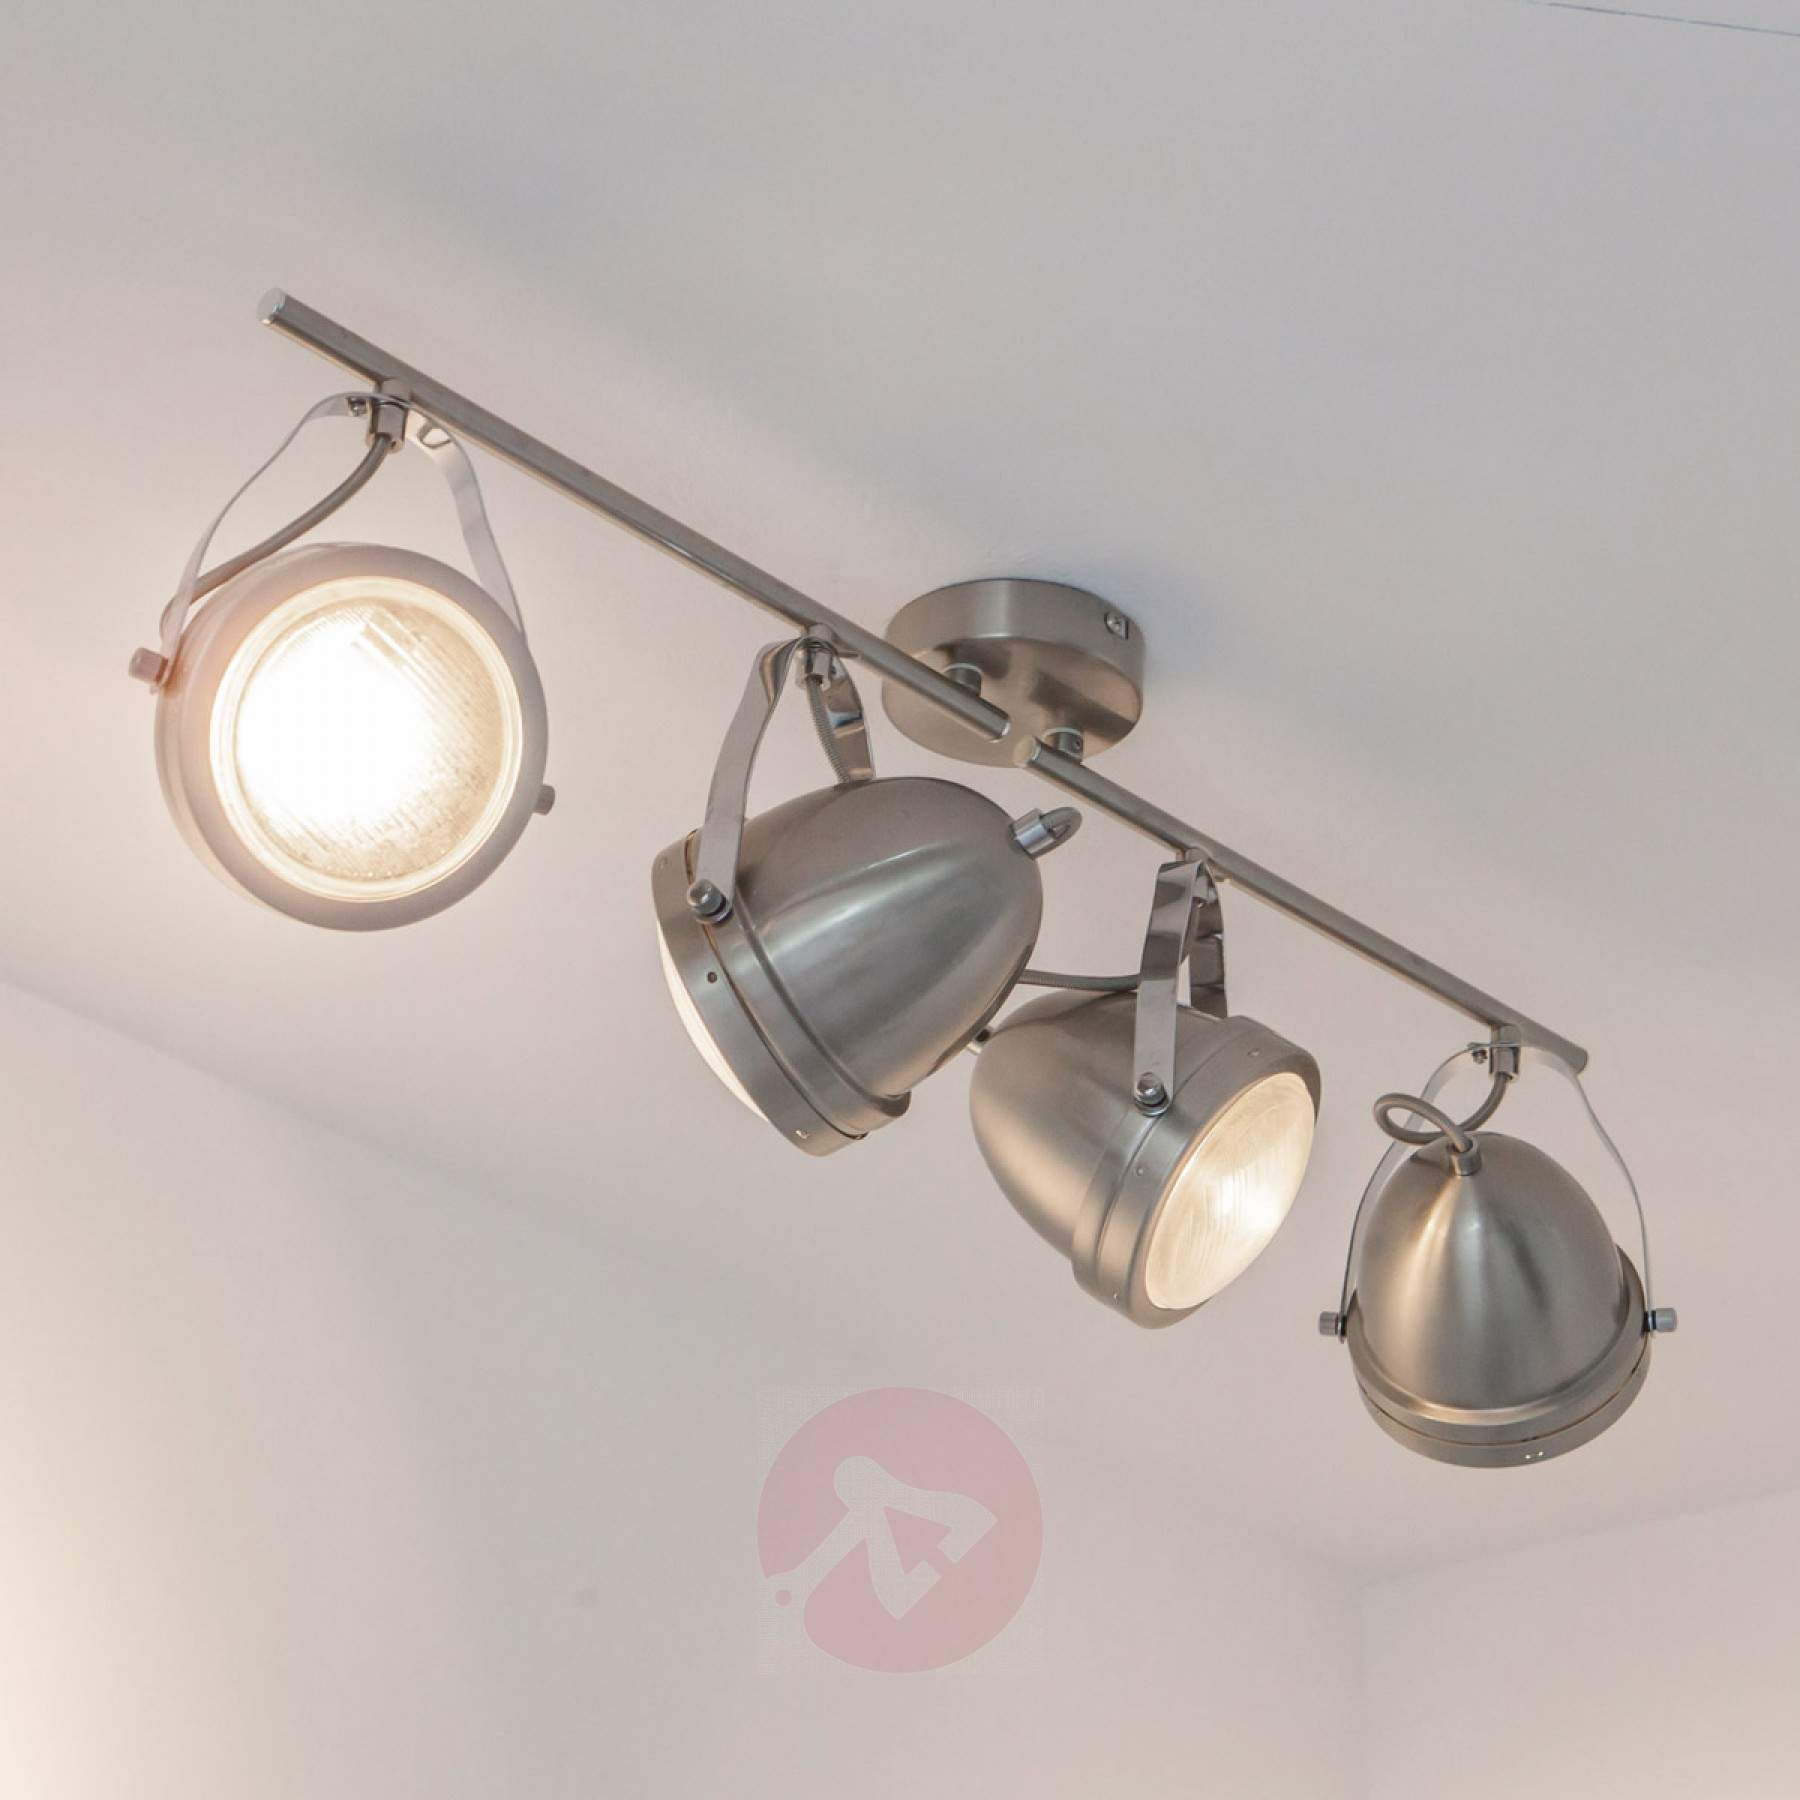 4 bulb LED ceiling spotlight Jella | Lights.co.uk | Metal